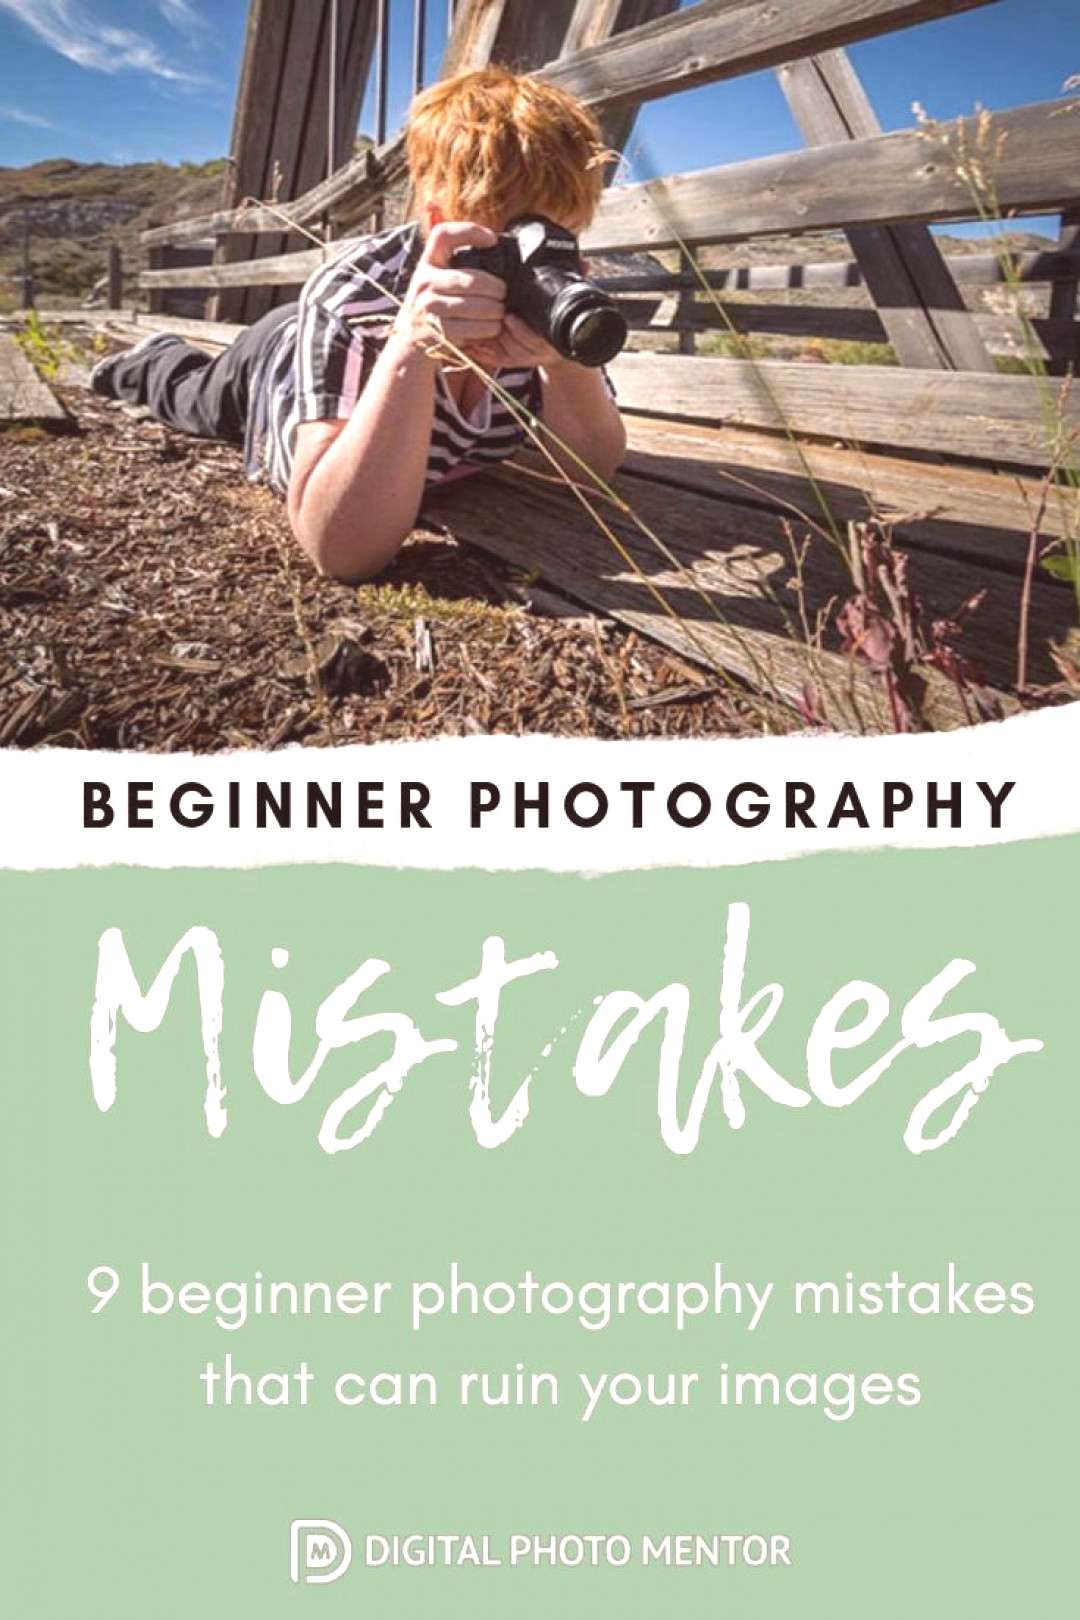 Beginner photography tips for helping the new photographer eliminate common mistakes.Learn to take